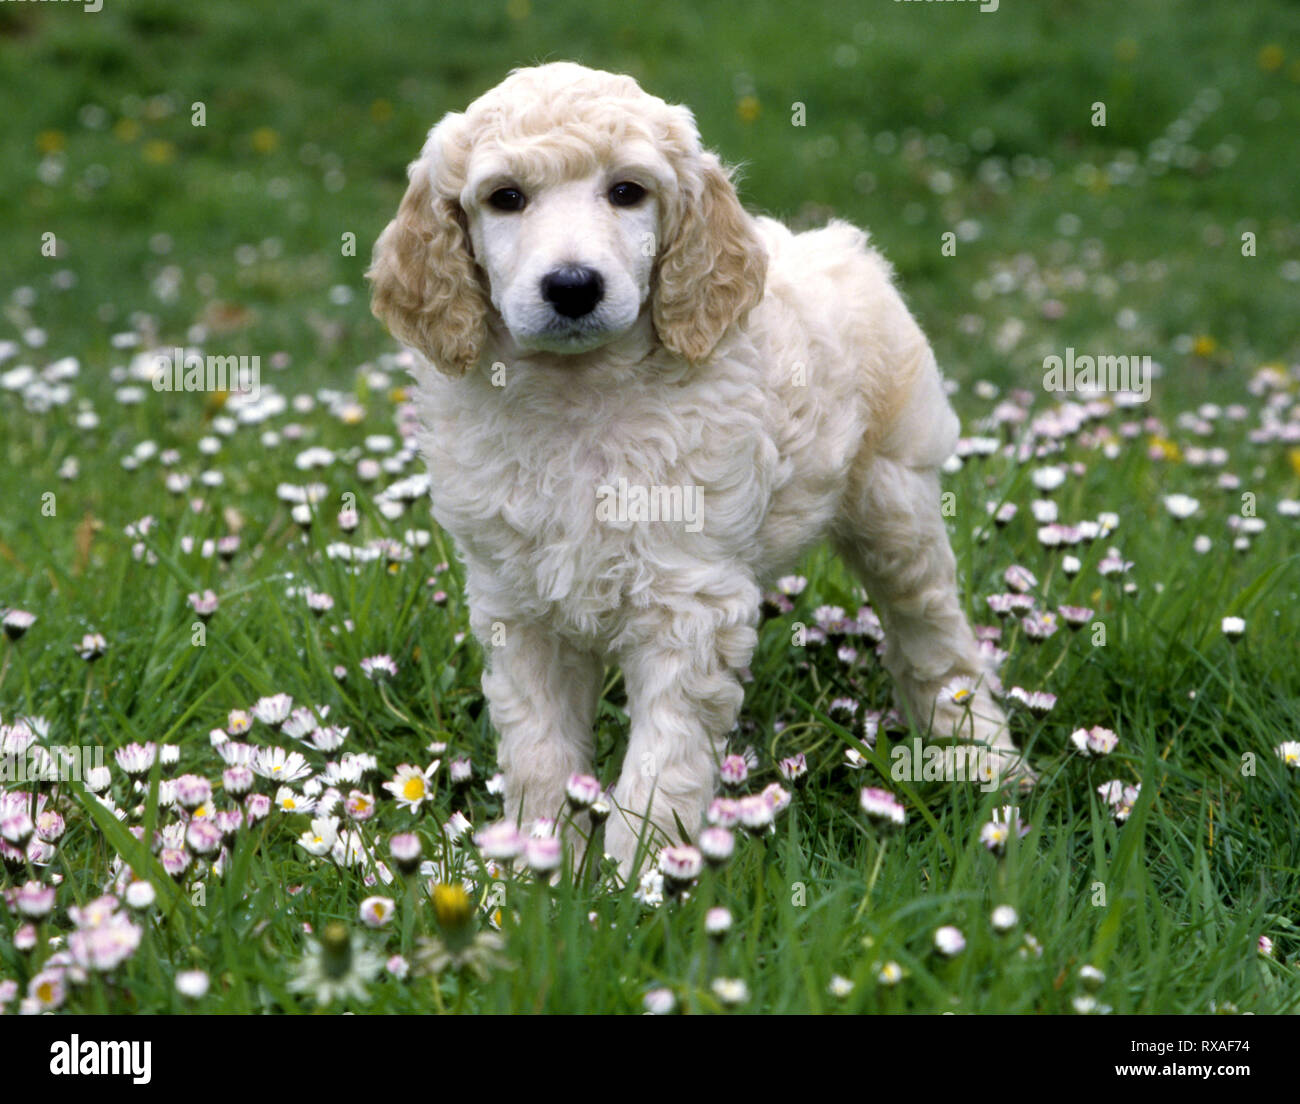 Standard Poodle Puppy Standing In Field Of Baby Daisies Stock Photo Alamy